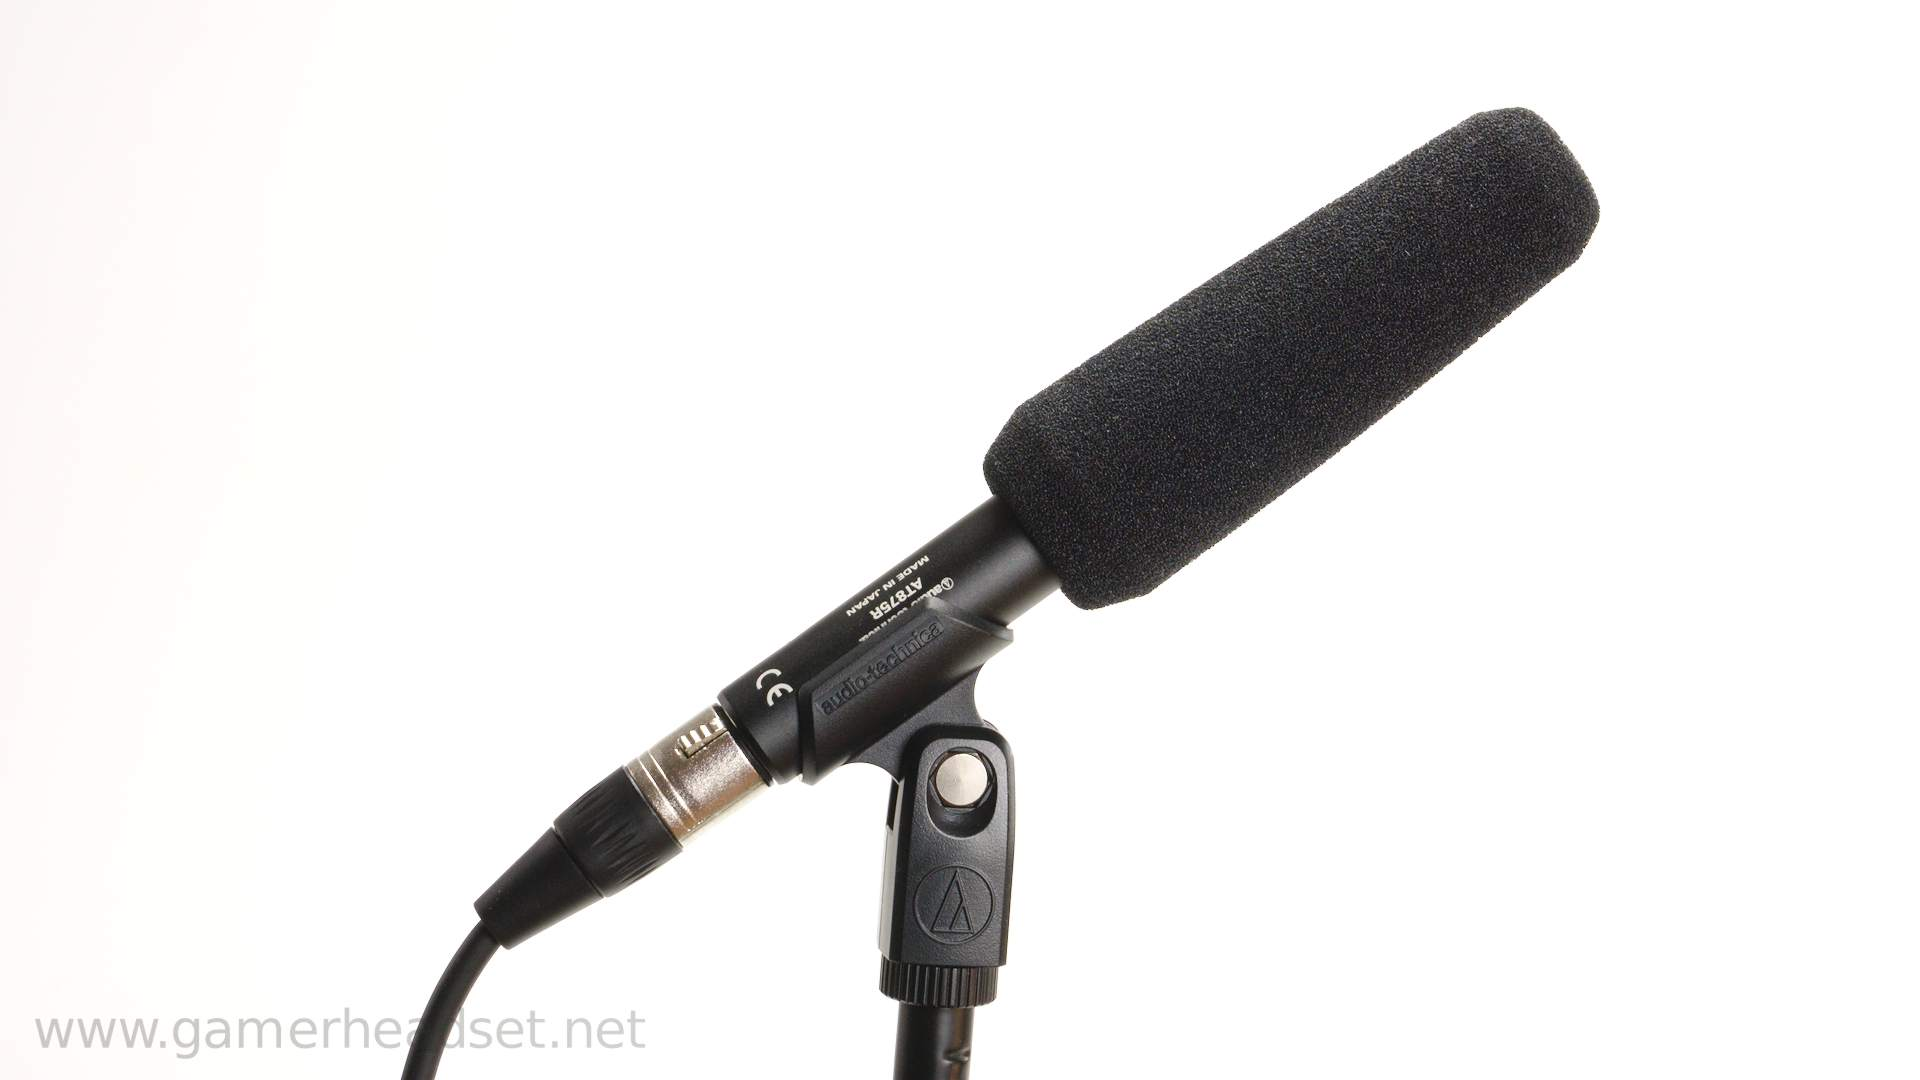 Hqrp 1.8m M 3 Polig XLR auf F Kabel für Audio-Technica AT875R AT2020 AT2035